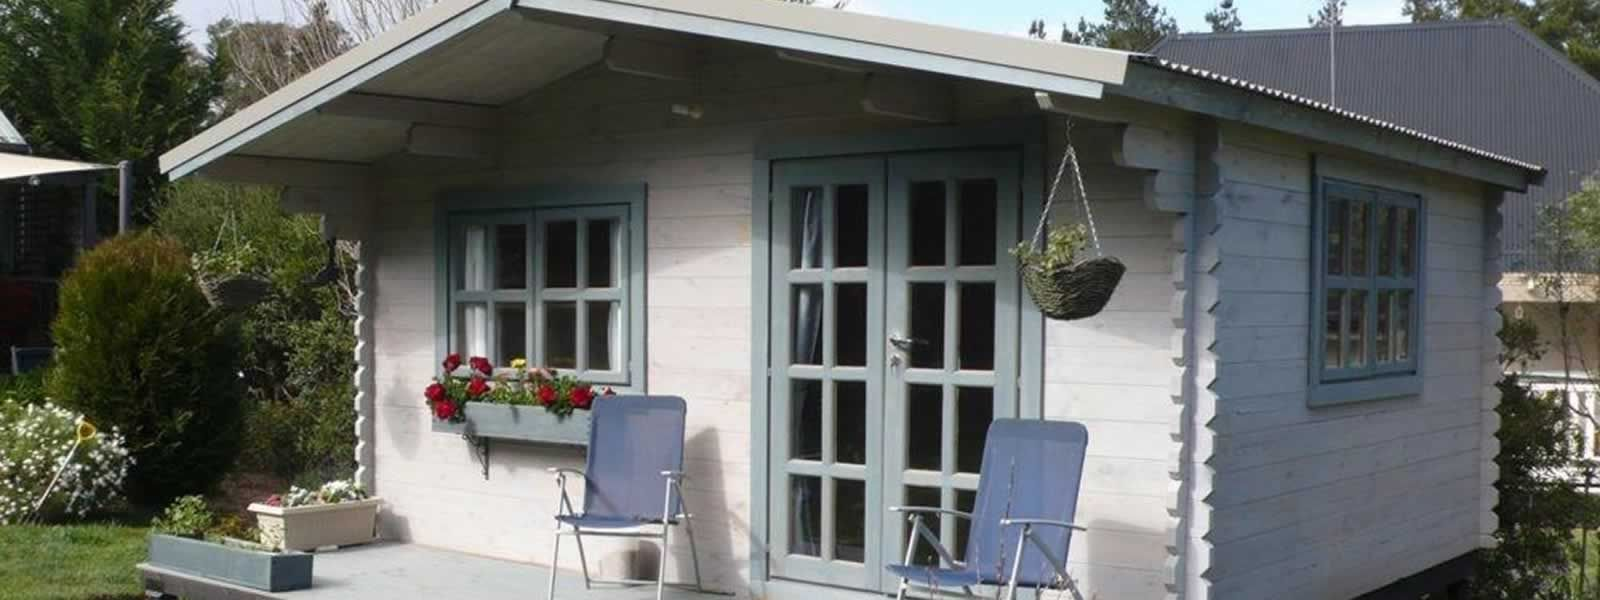 Backyard log cabins for sale Sydney. Well-insulated, good ...